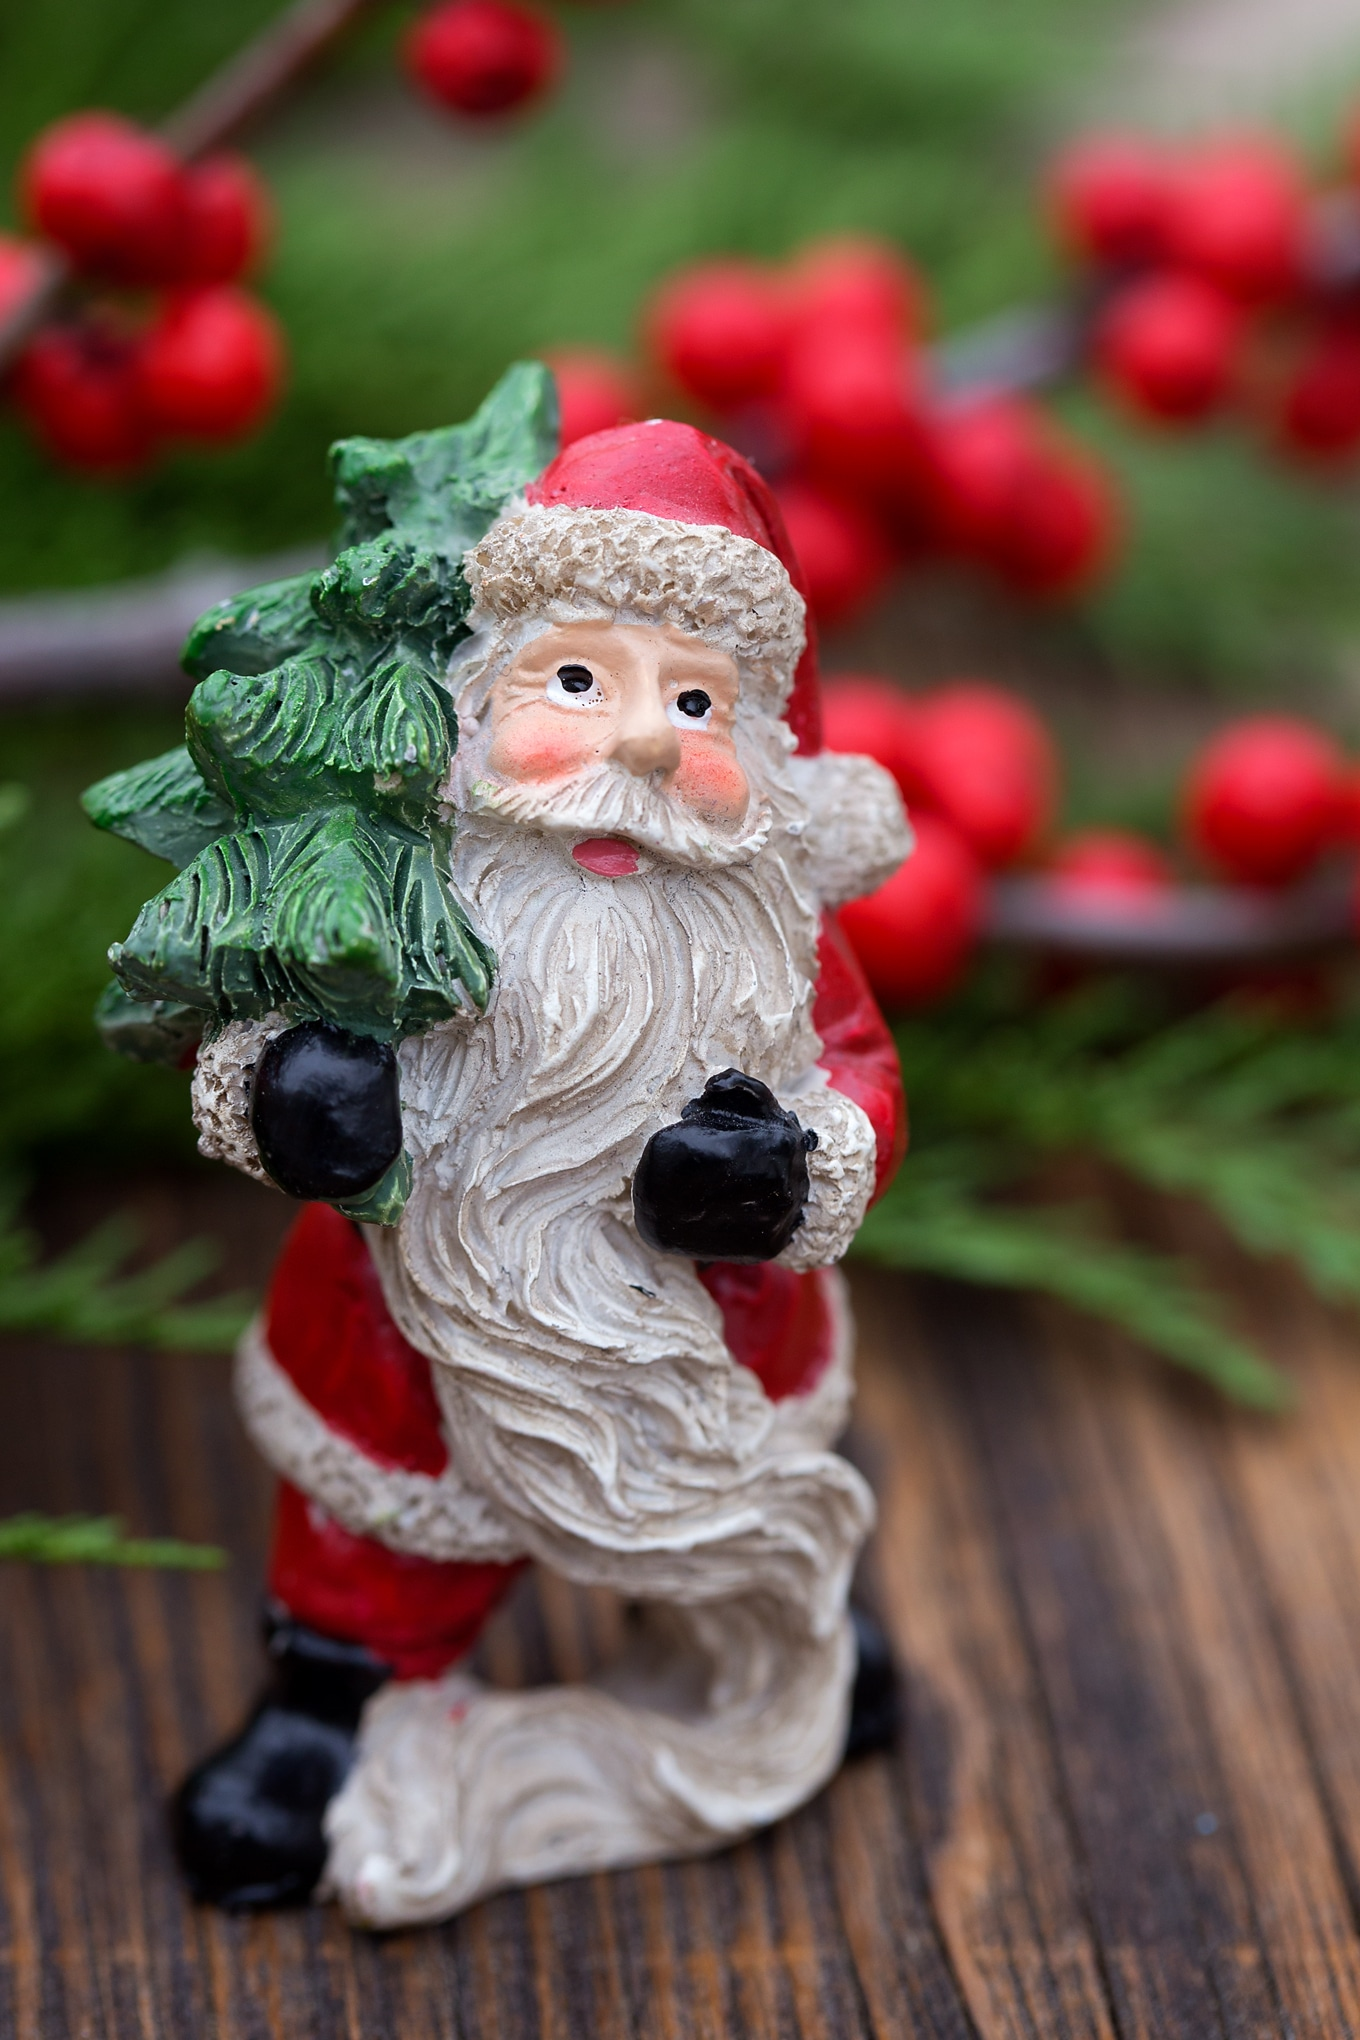 Santa Mini Figure for Christmas Teacup Garden